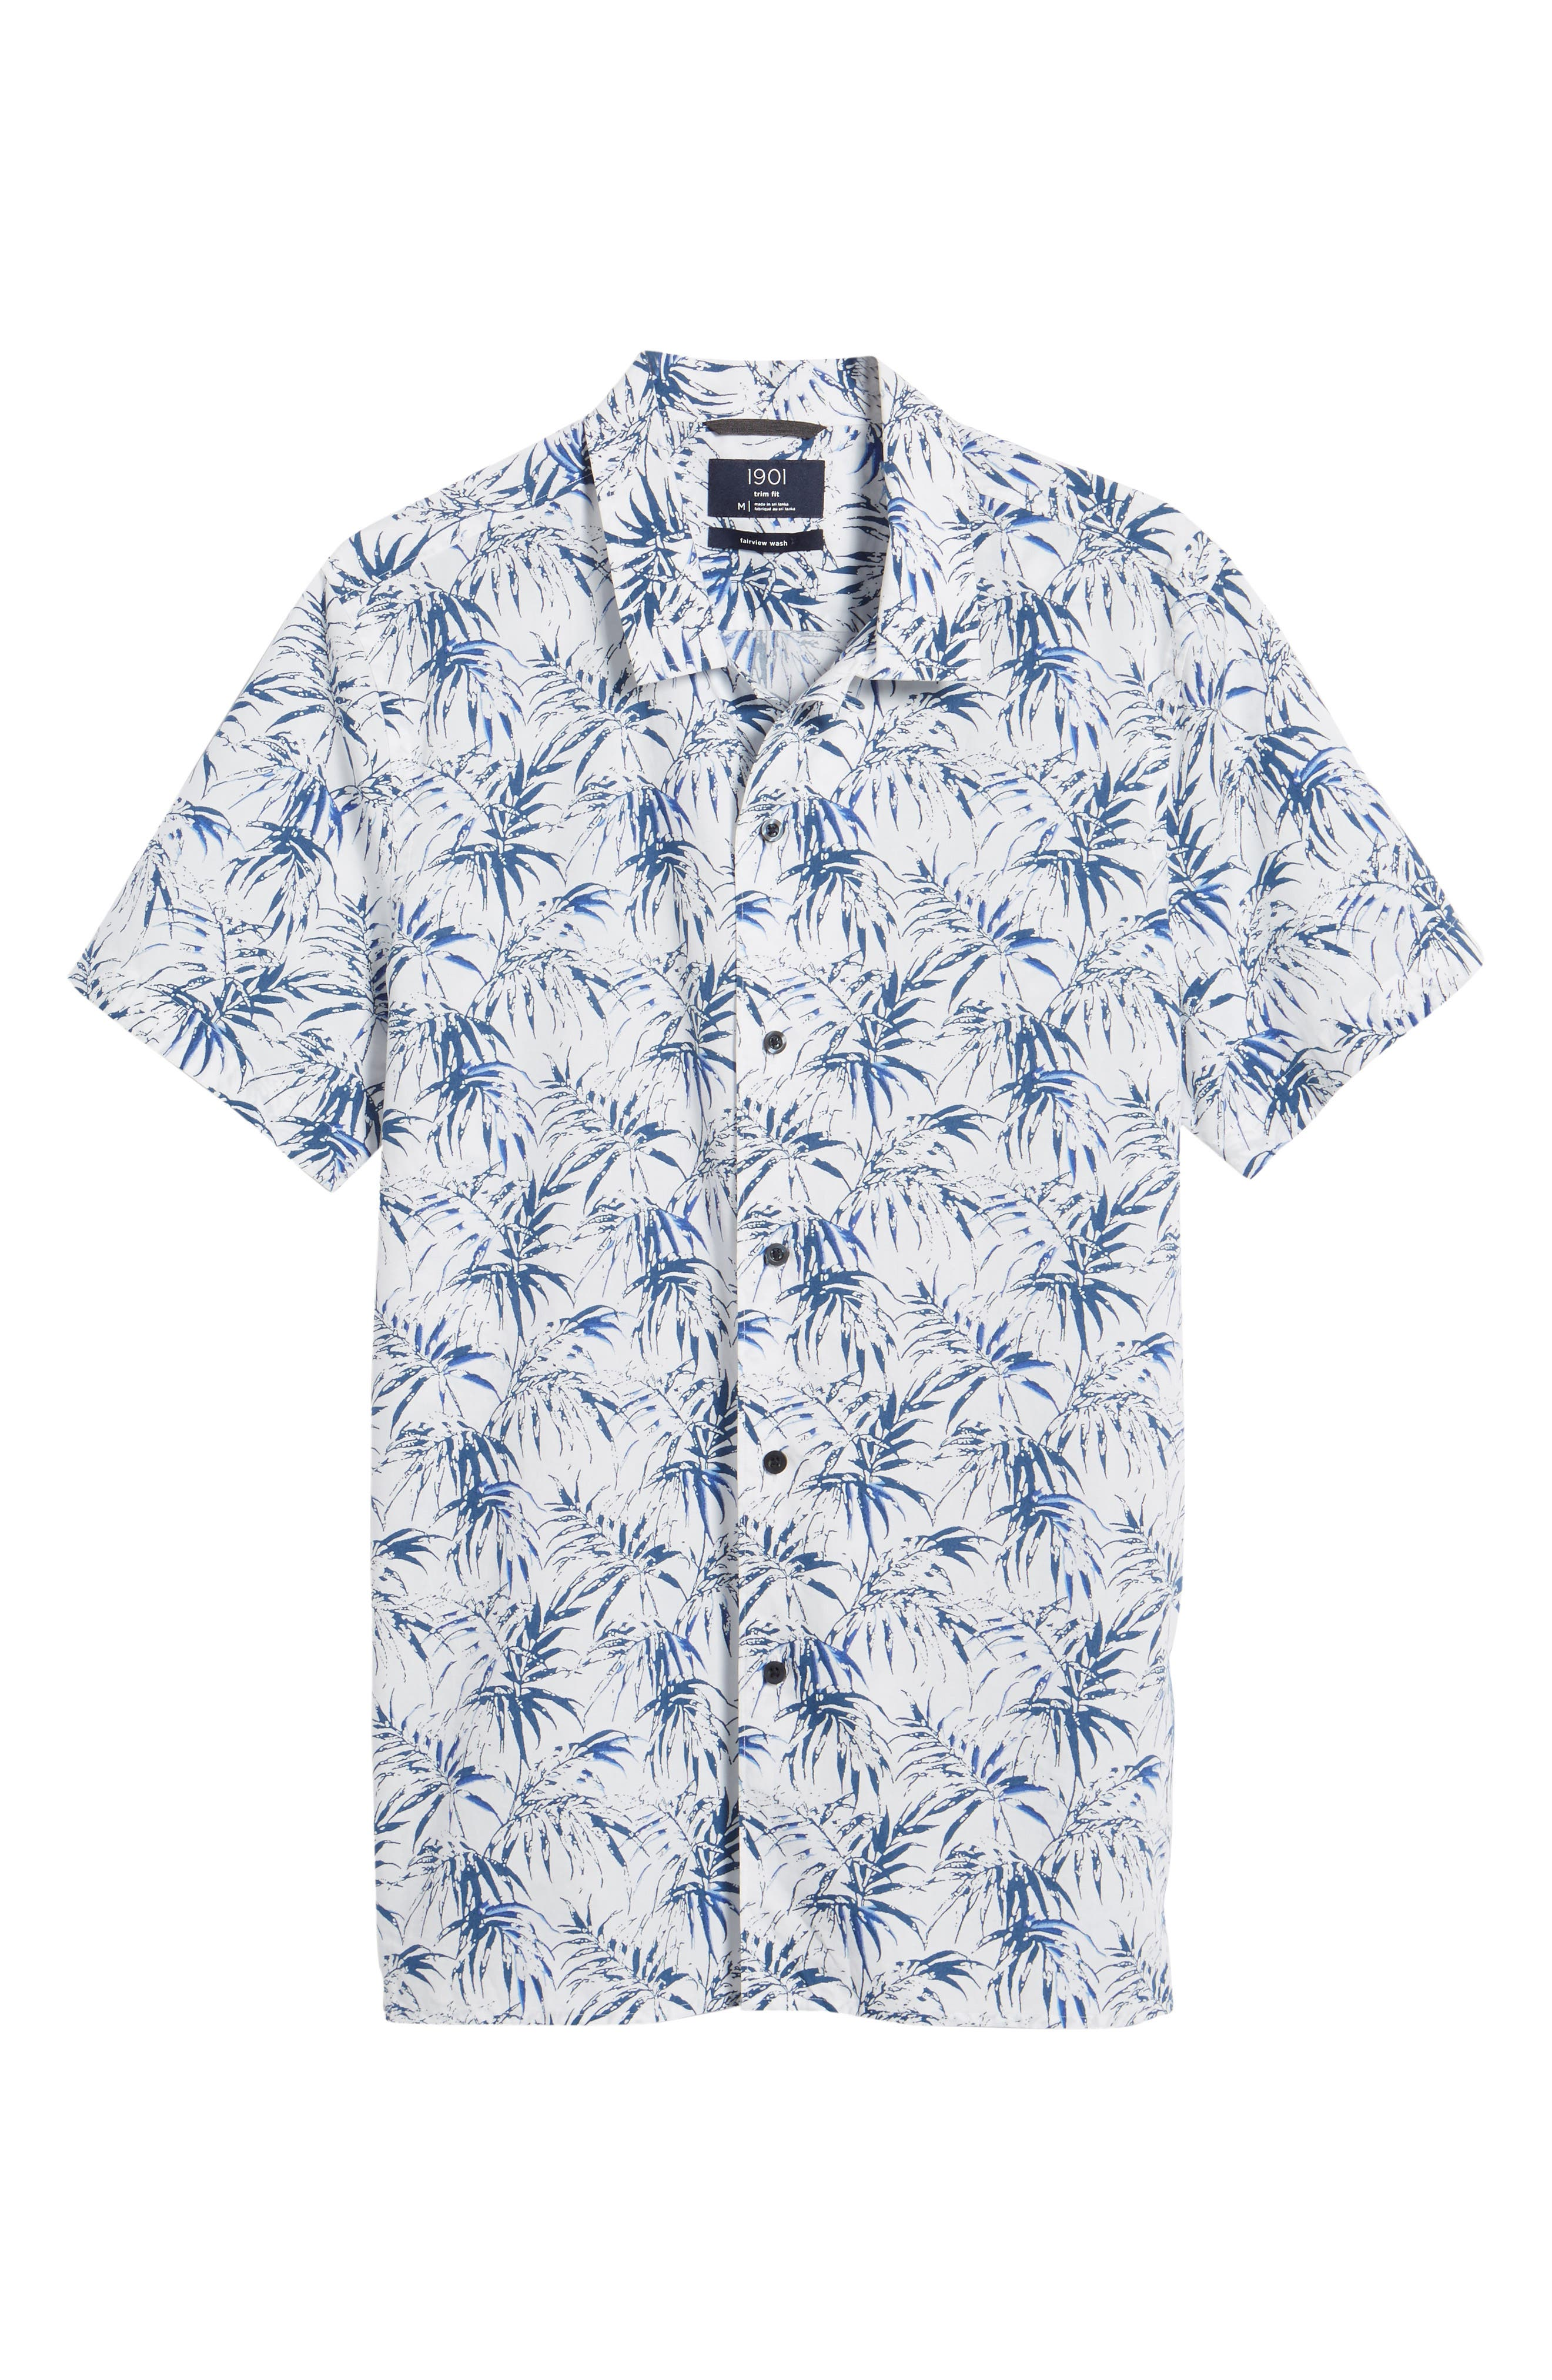 Trim Fit Palm Print Camp Shirt,                             Alternate thumbnail 6, color,                             White Navy Stamped Palms